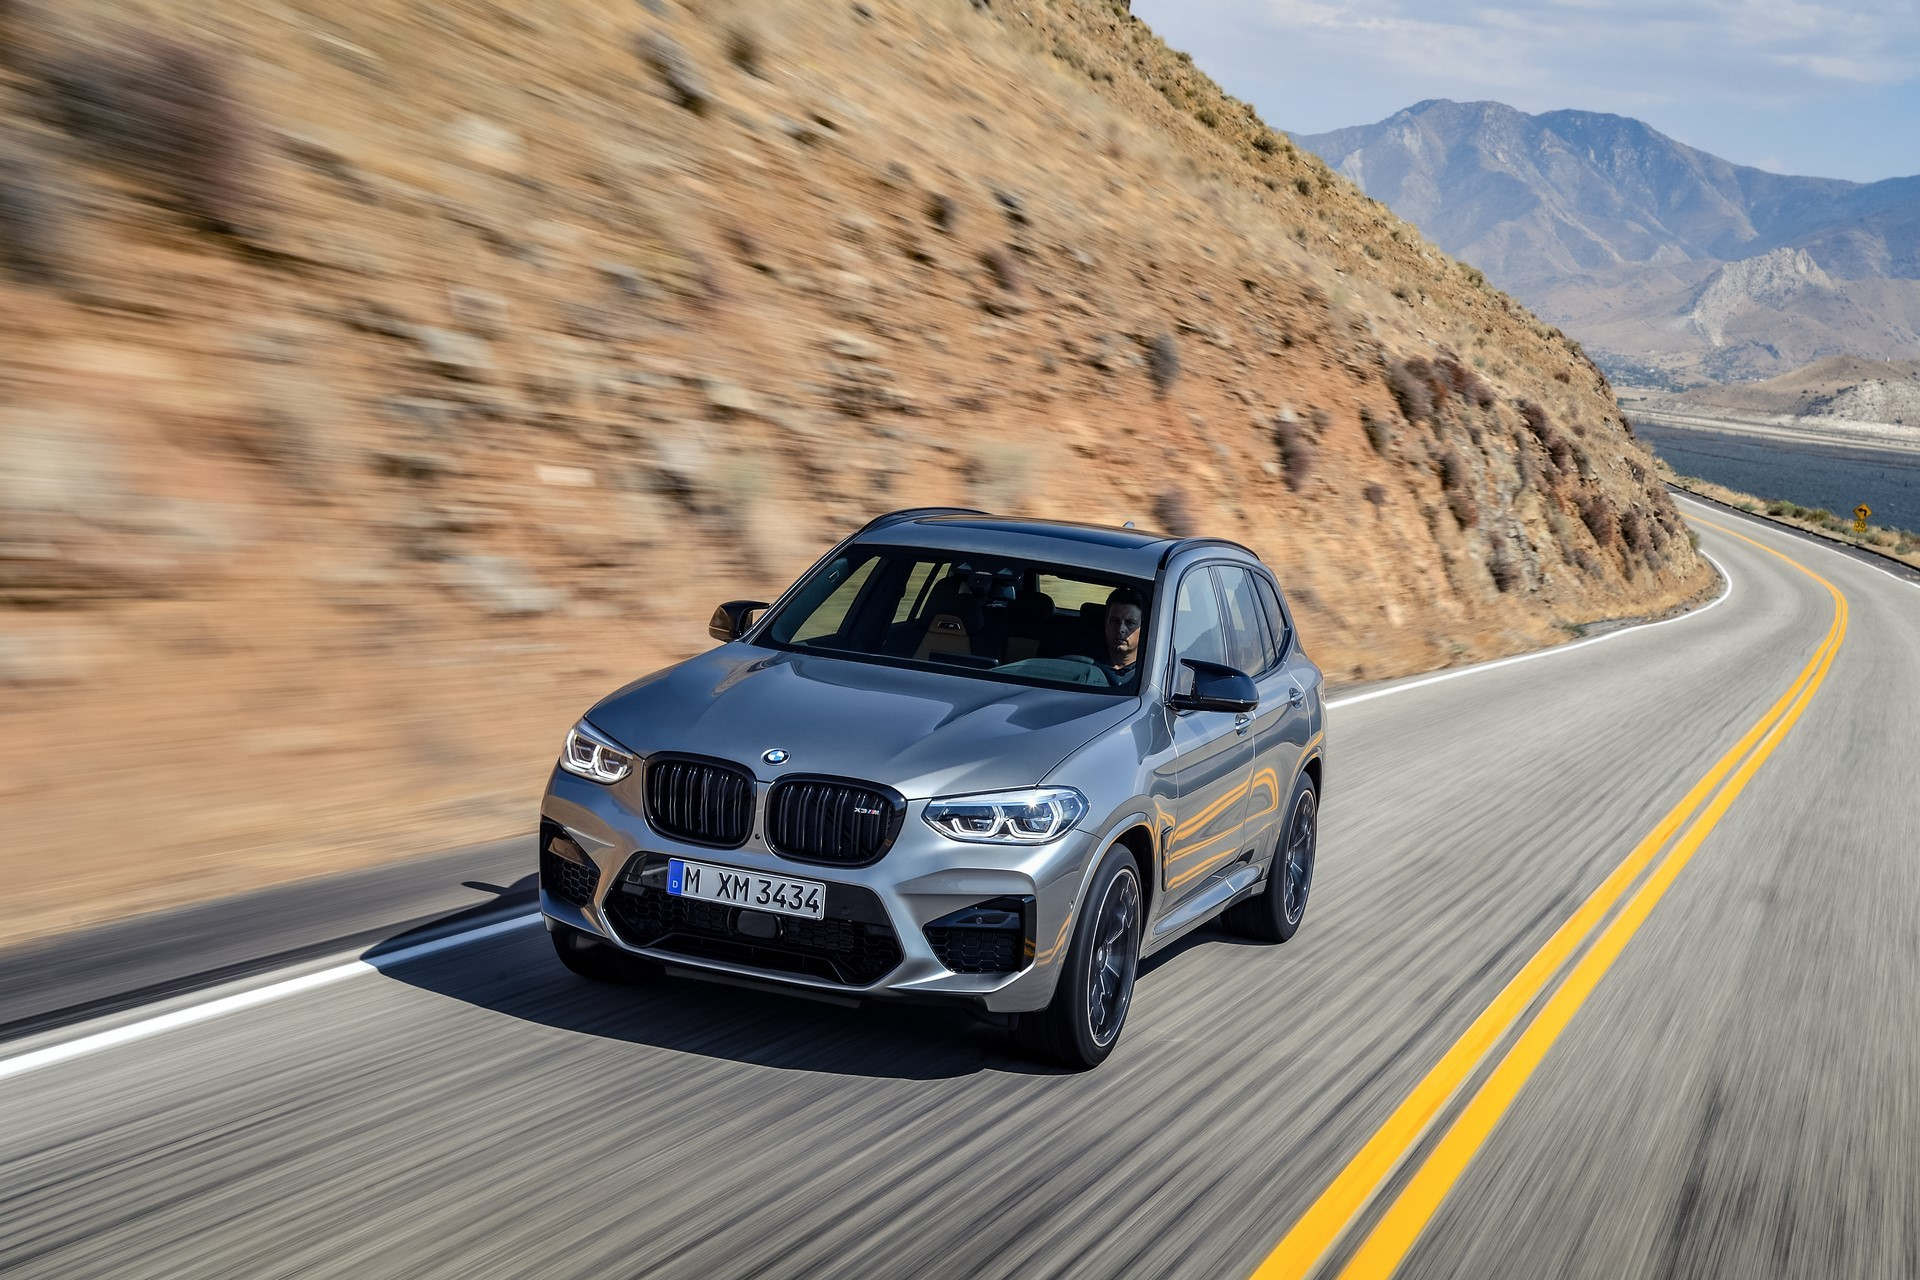 BMW X3 M and X4 M 2019 (28)